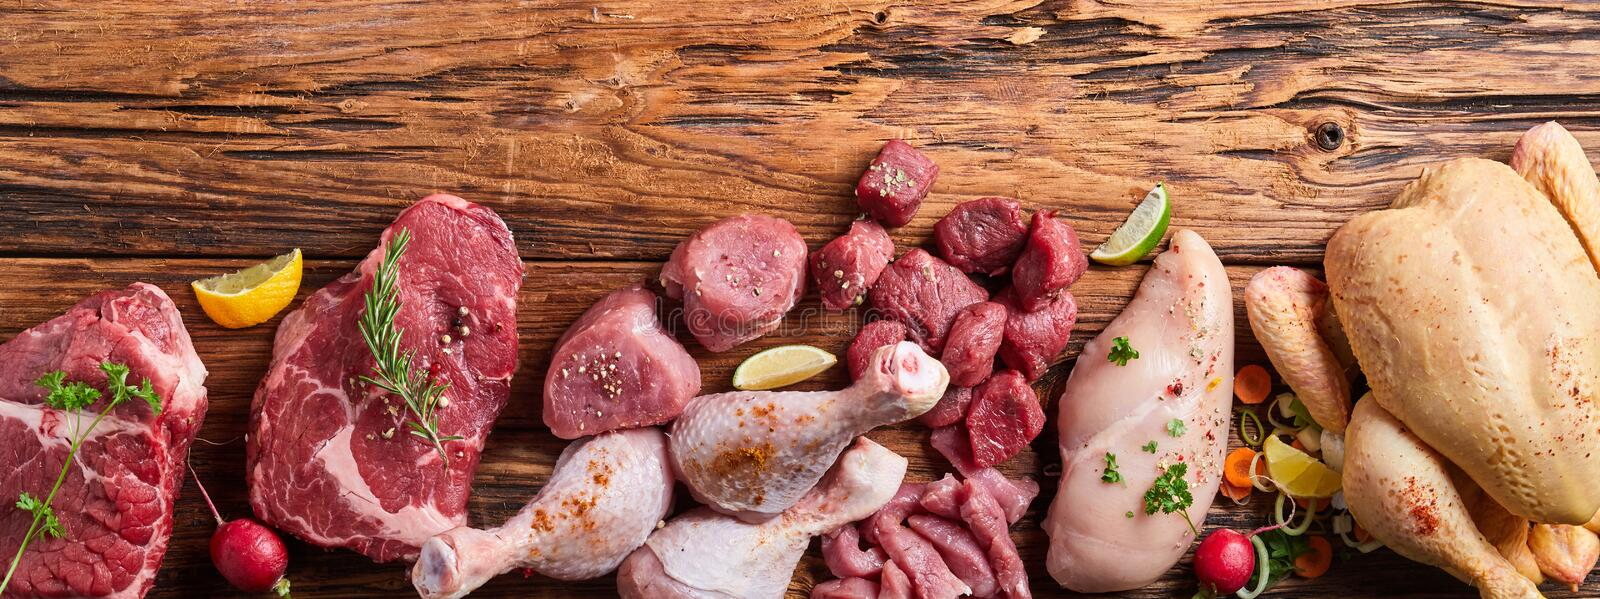 Assortment of raw meat on wooden table. With vegetables, greens and sprinkled with spices, viewed from above with copy space royalty free stock photos